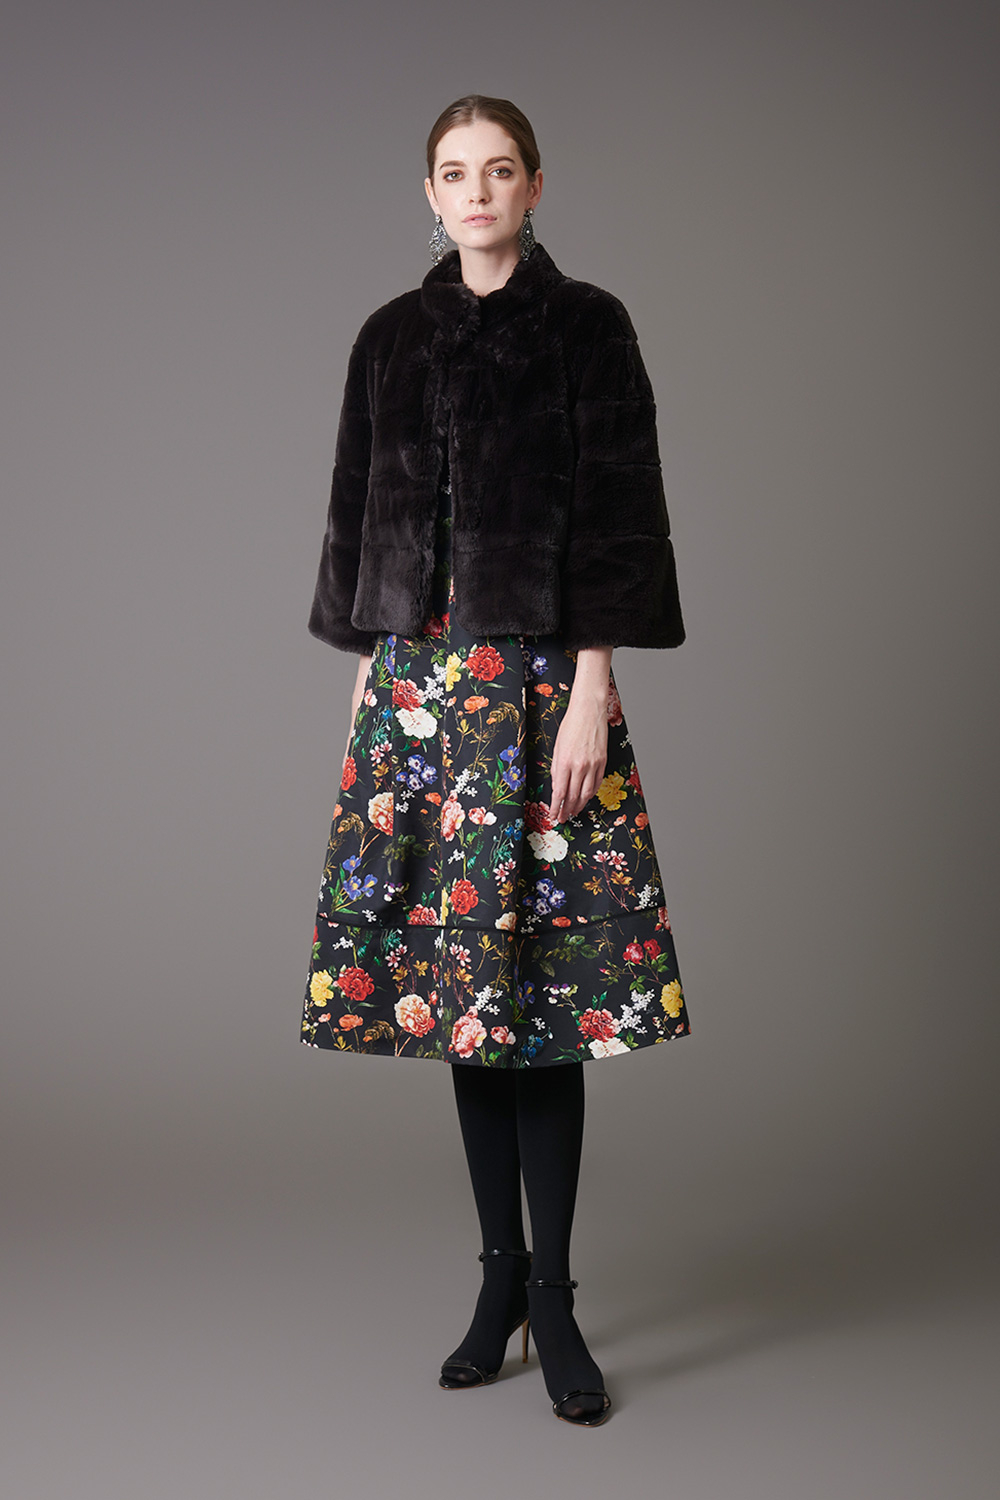 Fur Jacket & Flower Print Dress